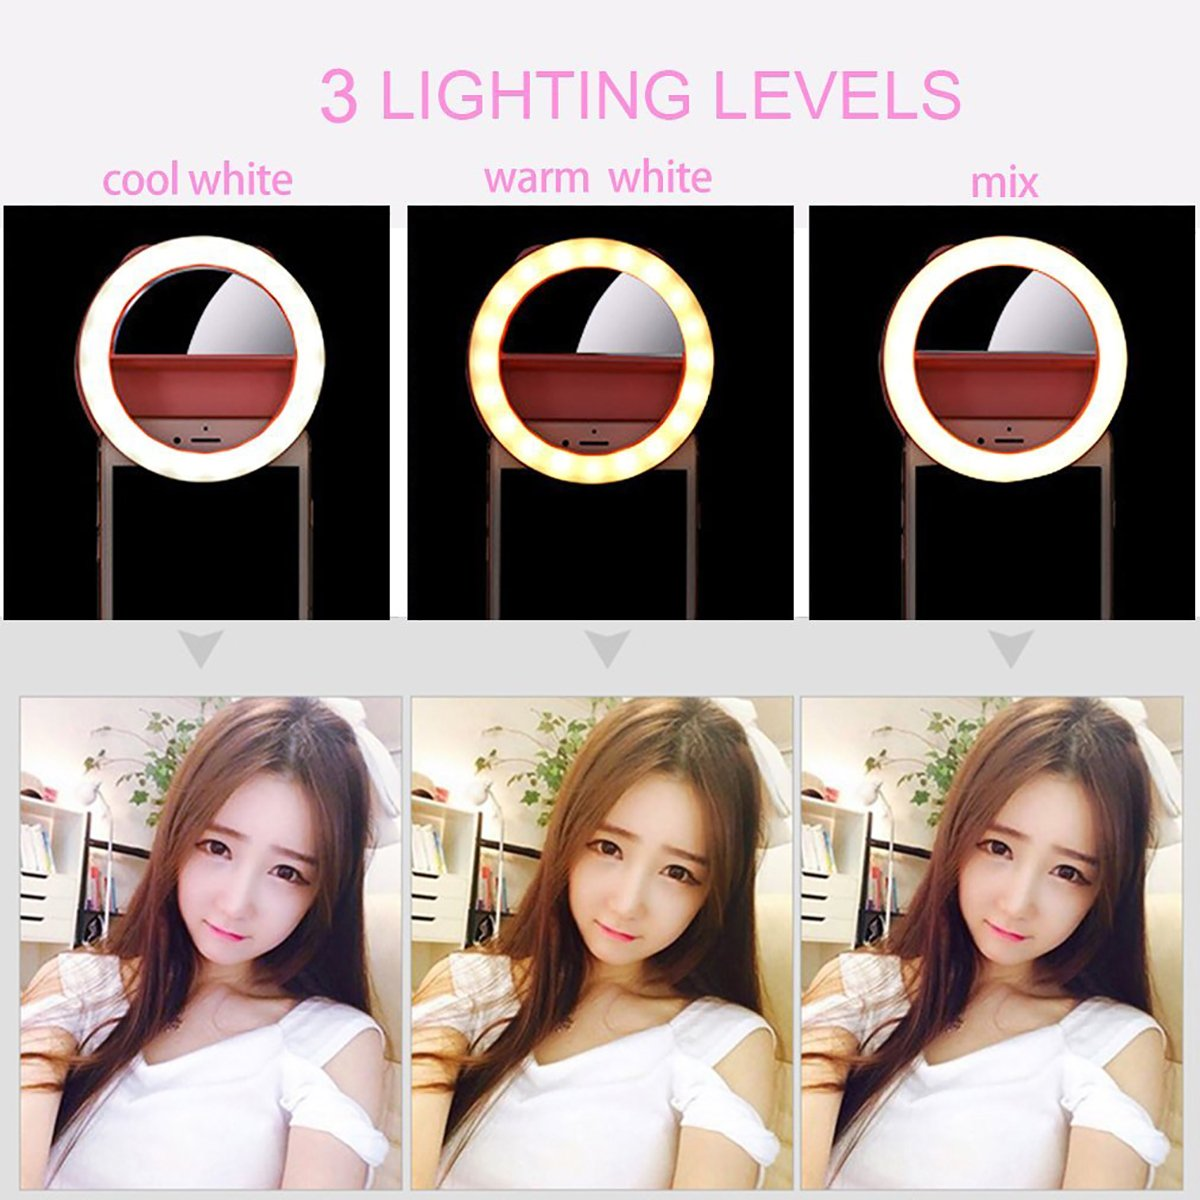 YIIYAA Selfie Light Ring, Portable Rechargeable Mini 40 Highlight LED Selfie Ring Flash Fill Light with Makeup Mirror 2 Gears Brightness Camera Photography for iPhone Adroid Tablet iPad Laptop Pink